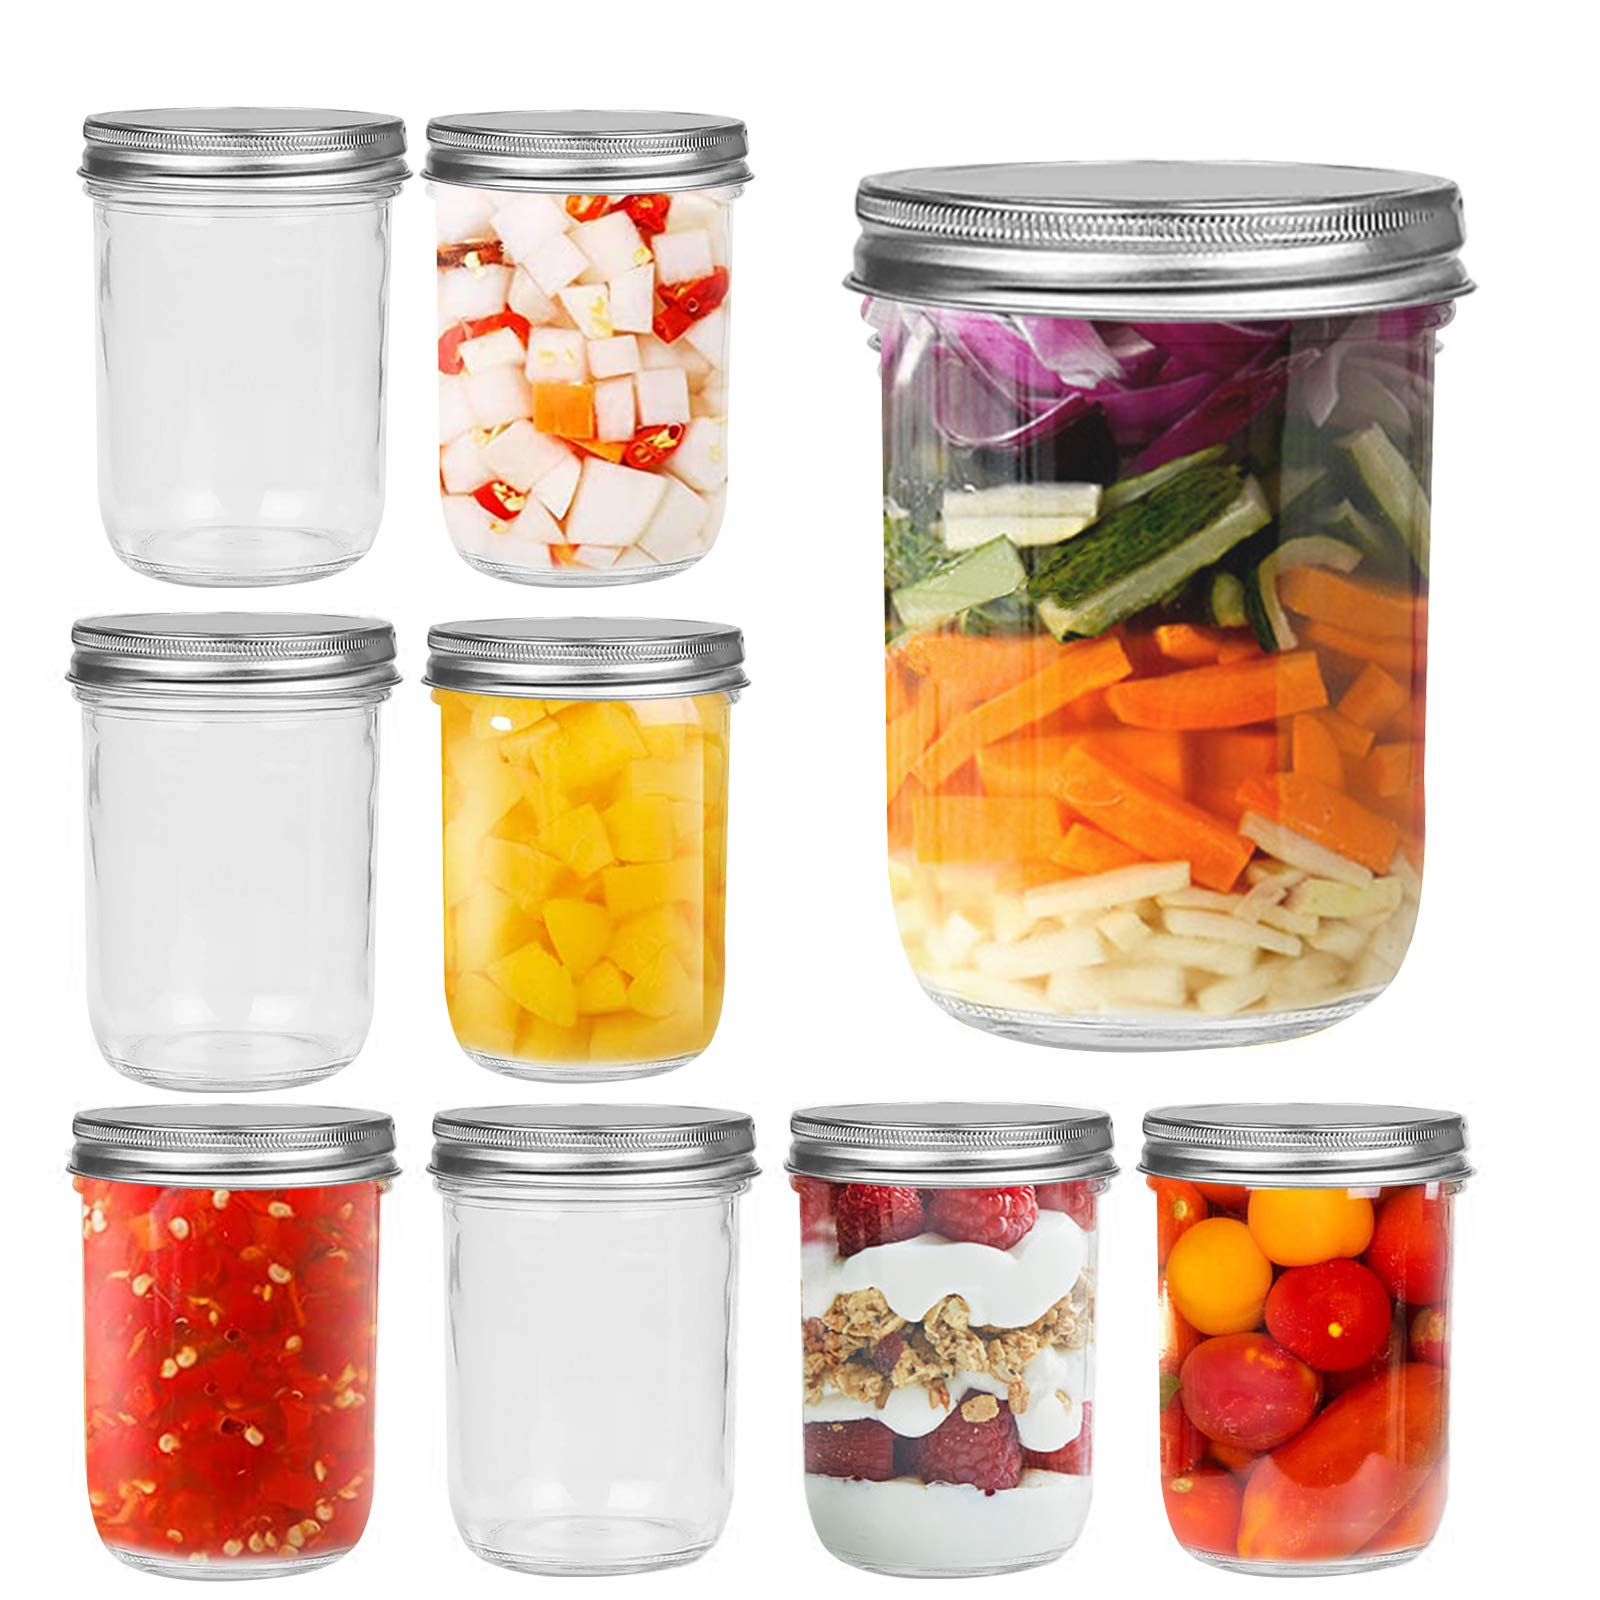 FRUITEAM 16 oz Wide Mouth Glass Mason Jars 8 Pack Smooth Sided